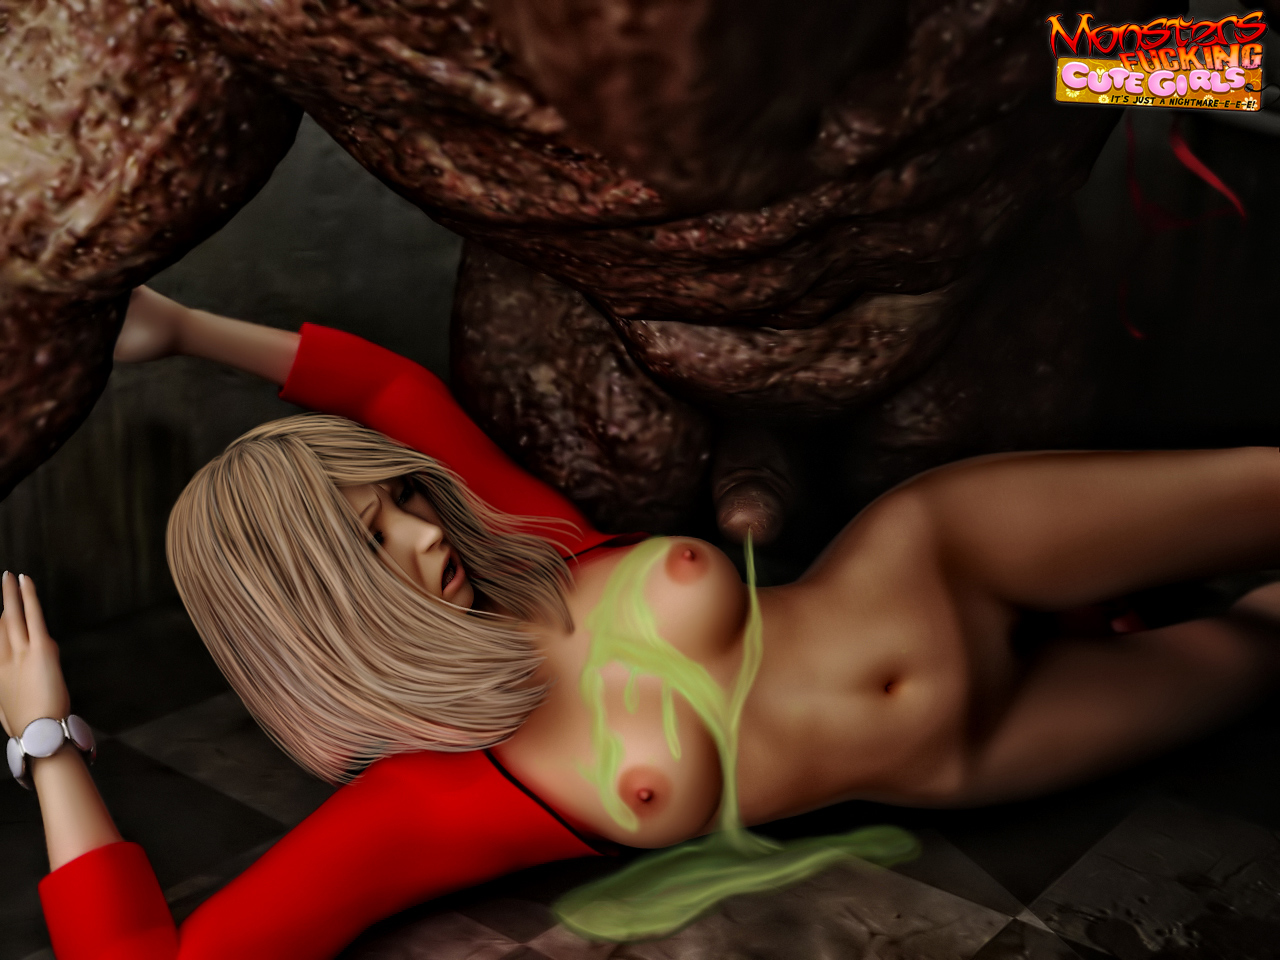 Monster and woman sex pics 3d sexy images